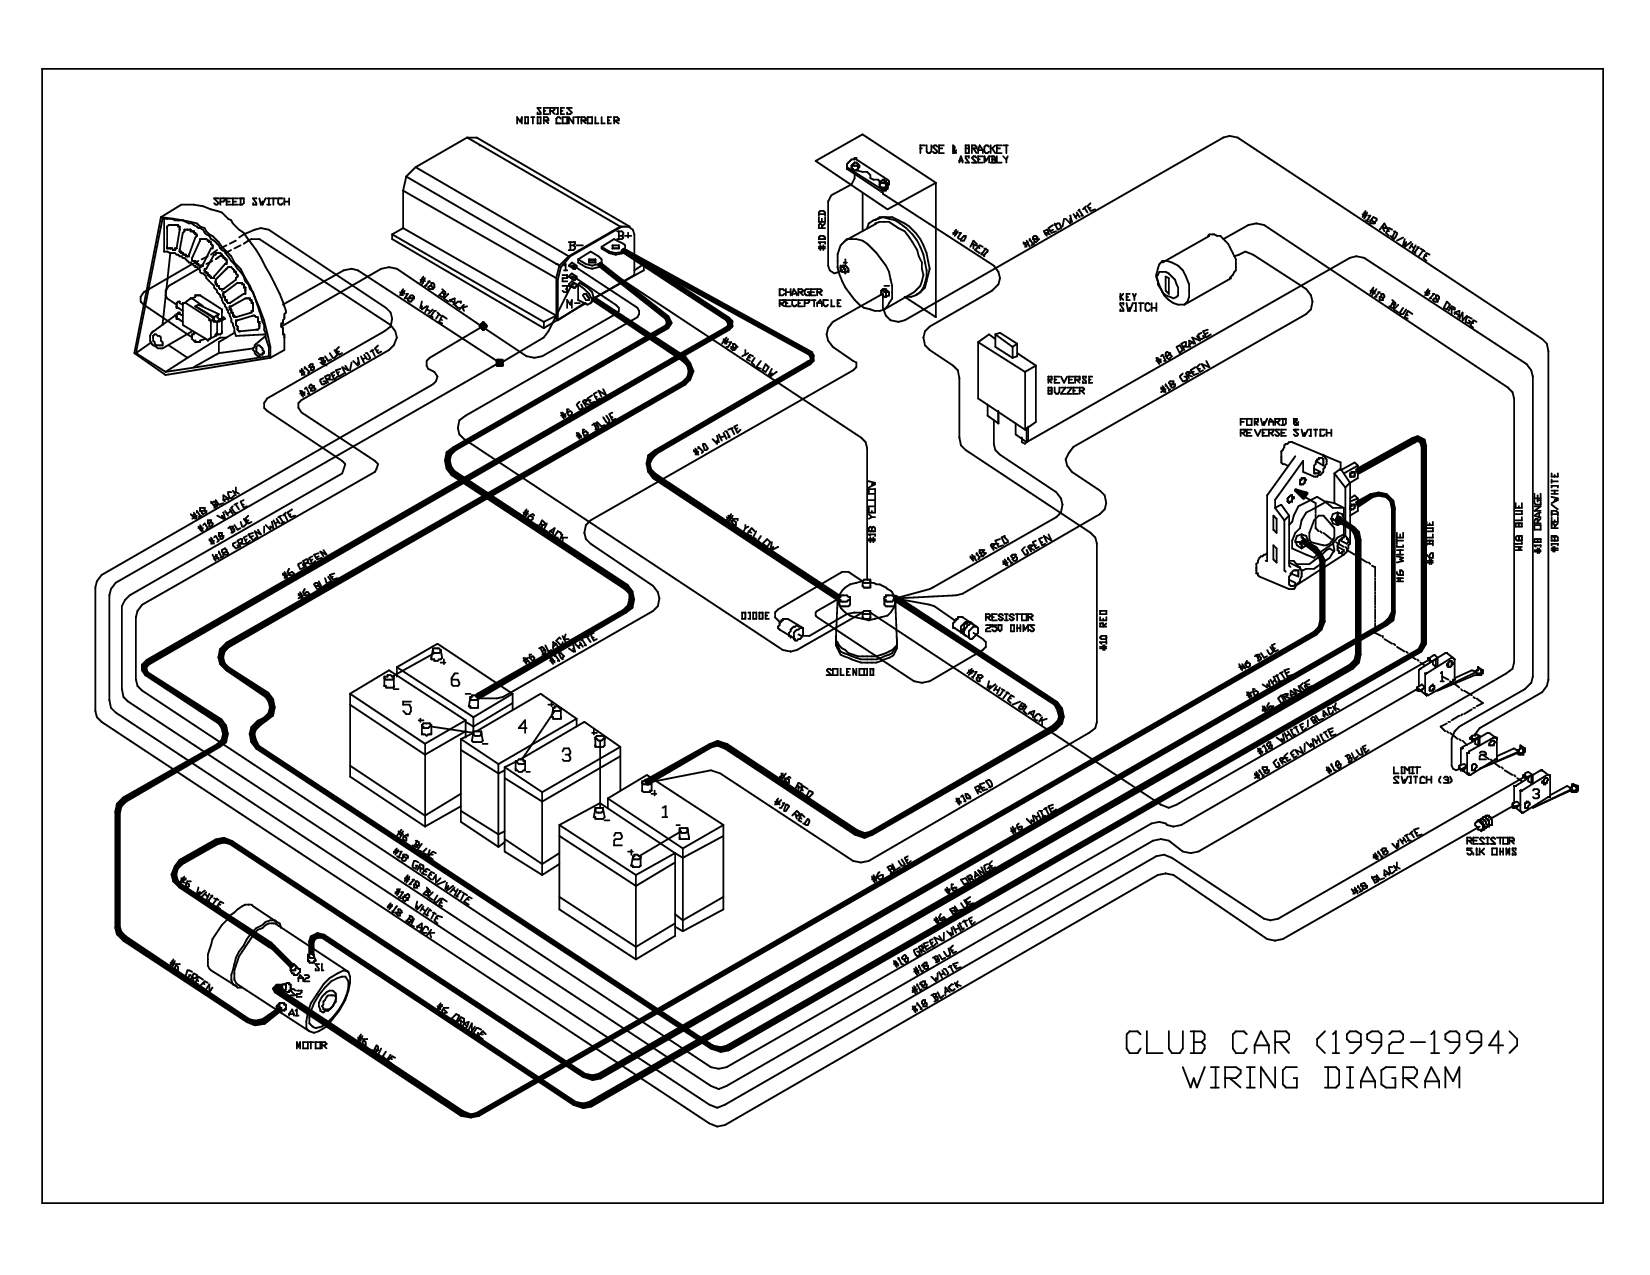 electric club car ds wiring diagram 94 9 15 stromoeko de \u2022